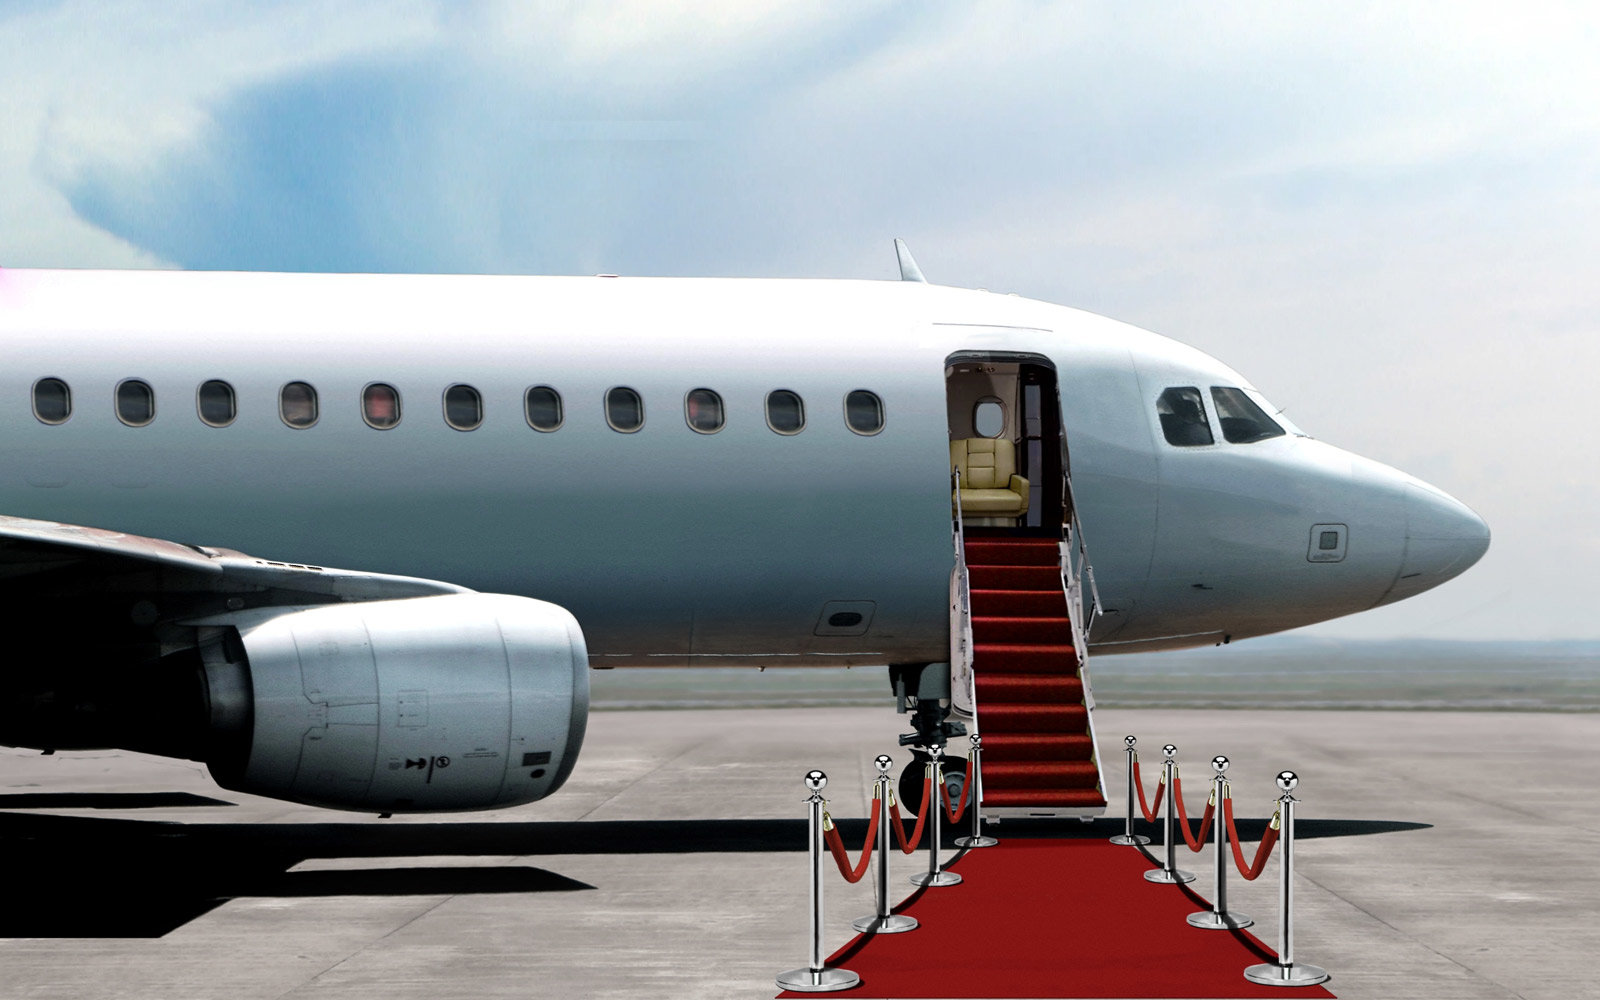 Airplane departure entrance with red carpet